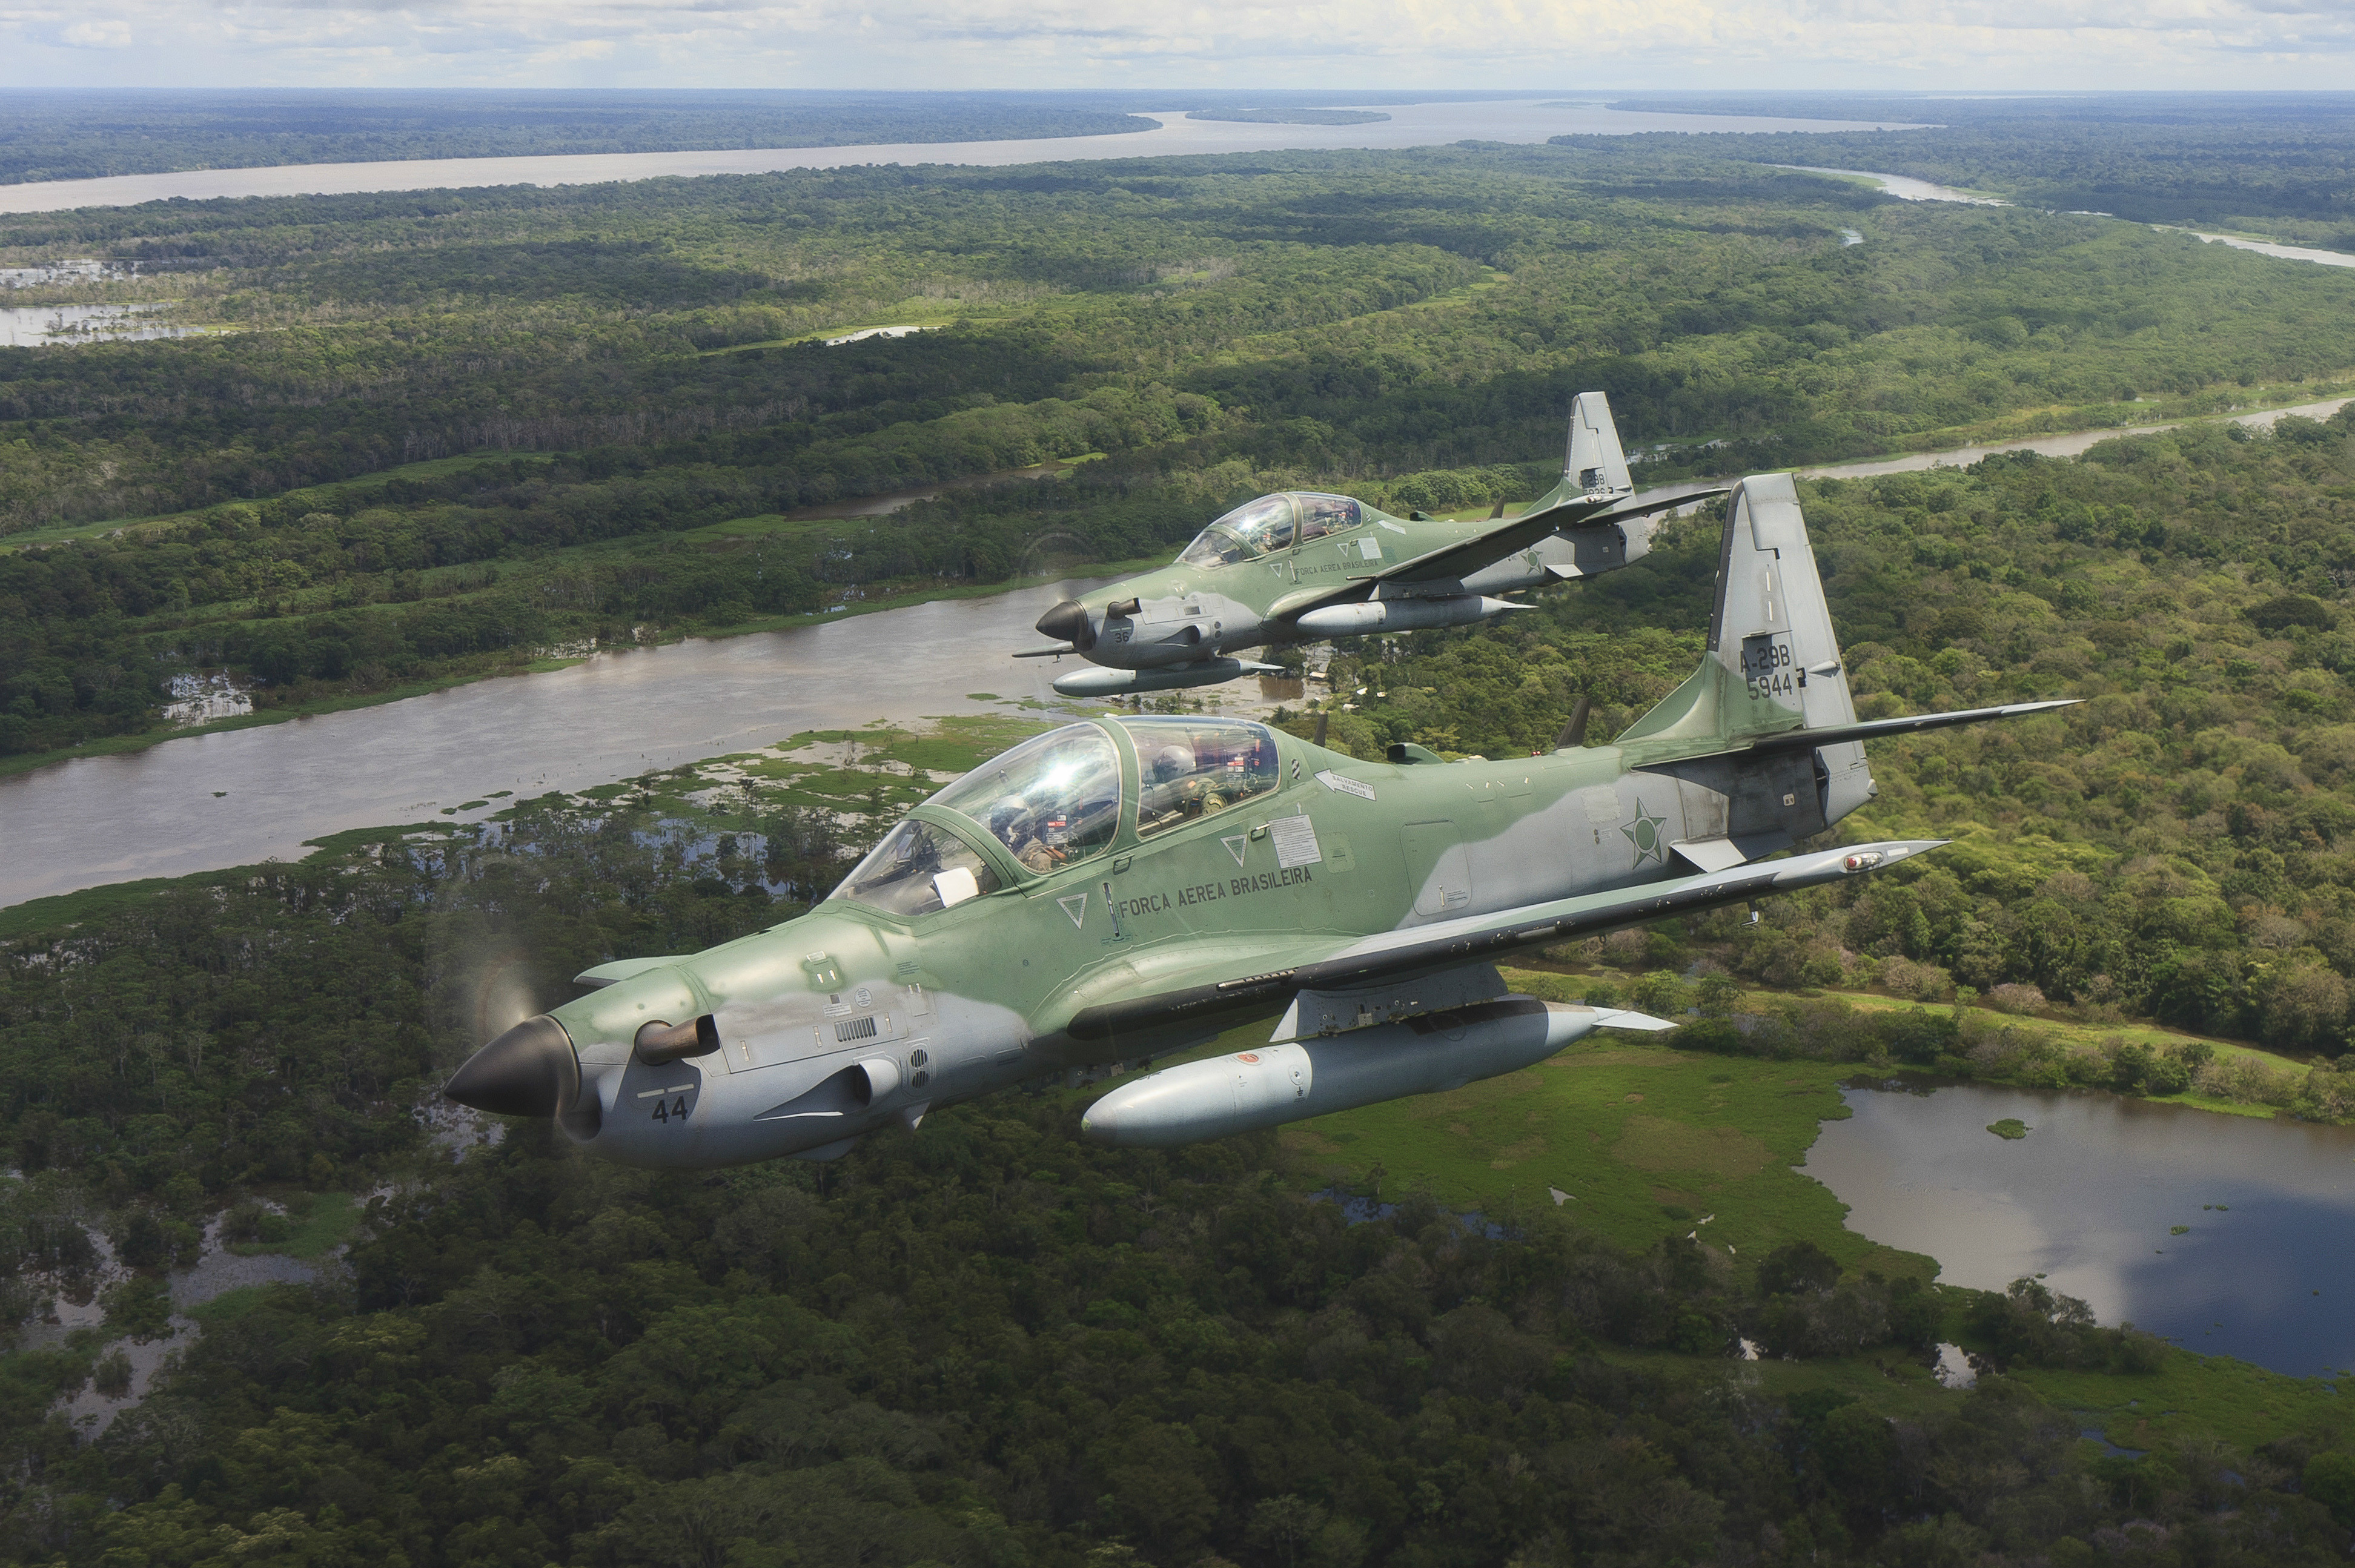 Brazilian Super Tucano aircraft in flight.